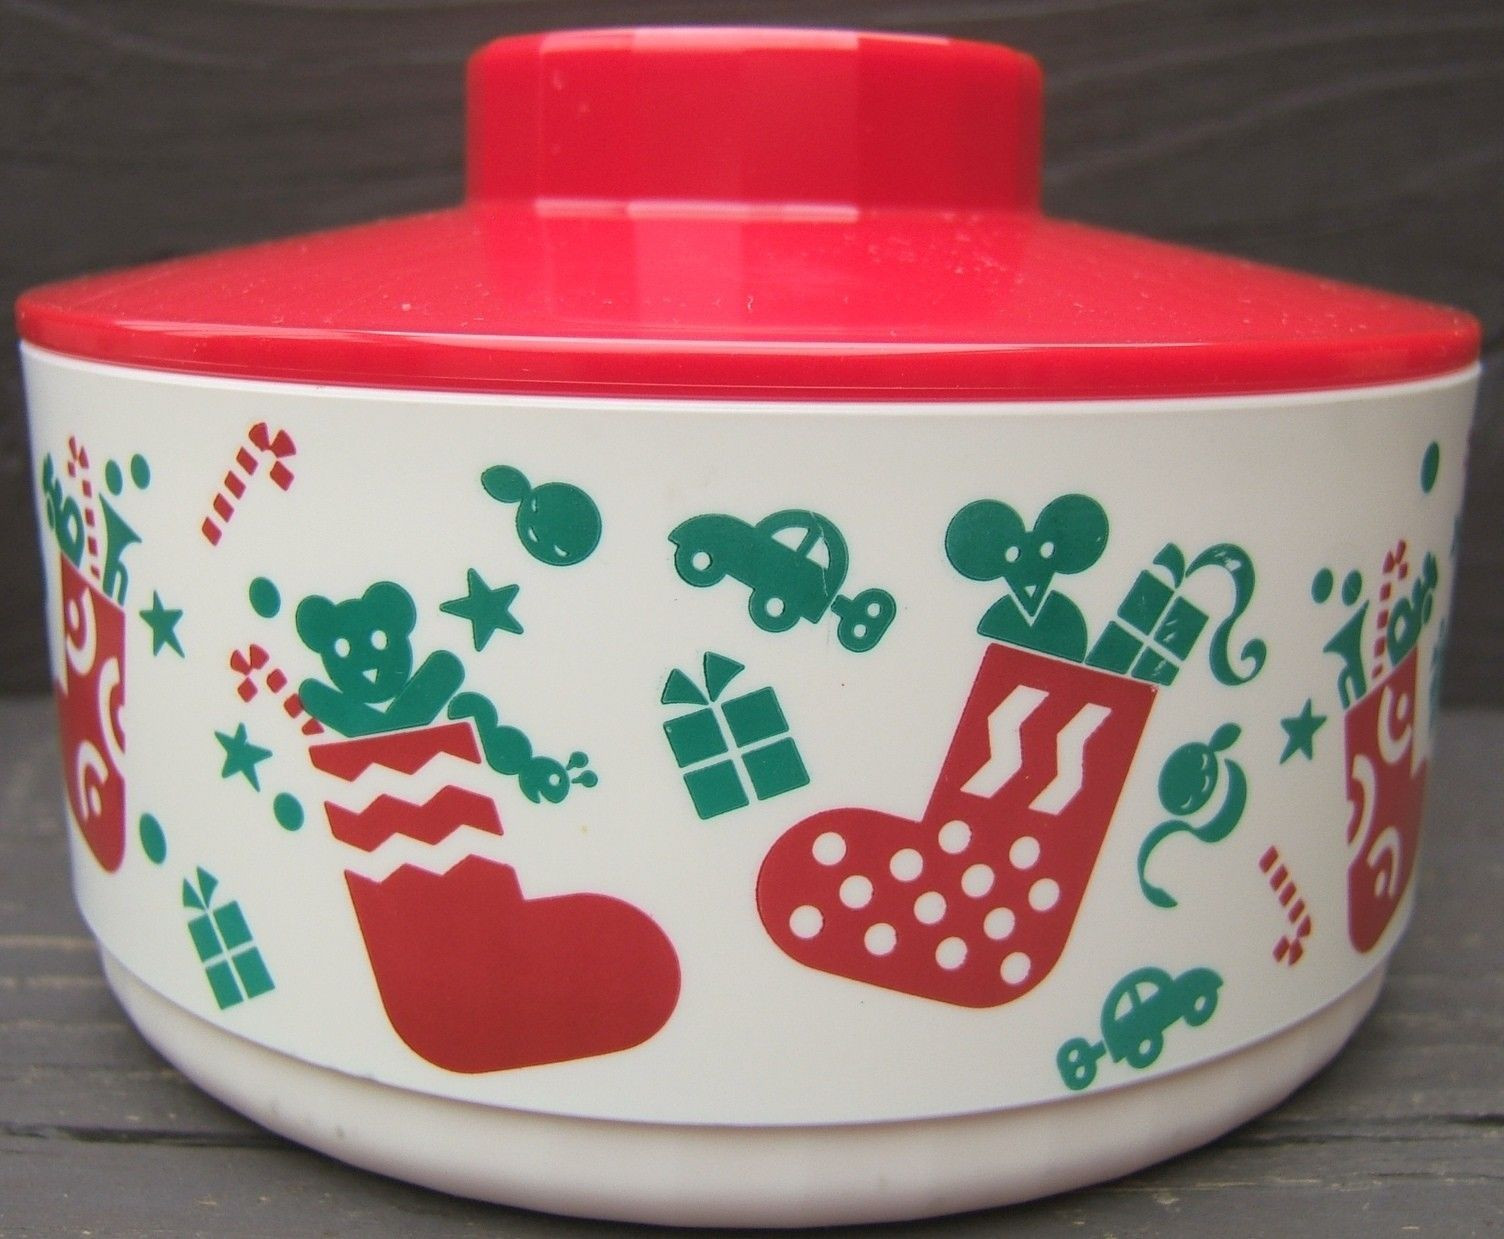 Christmas Candy Containers  Christmas Holiday Cookie Candy Containers with Cover Lids